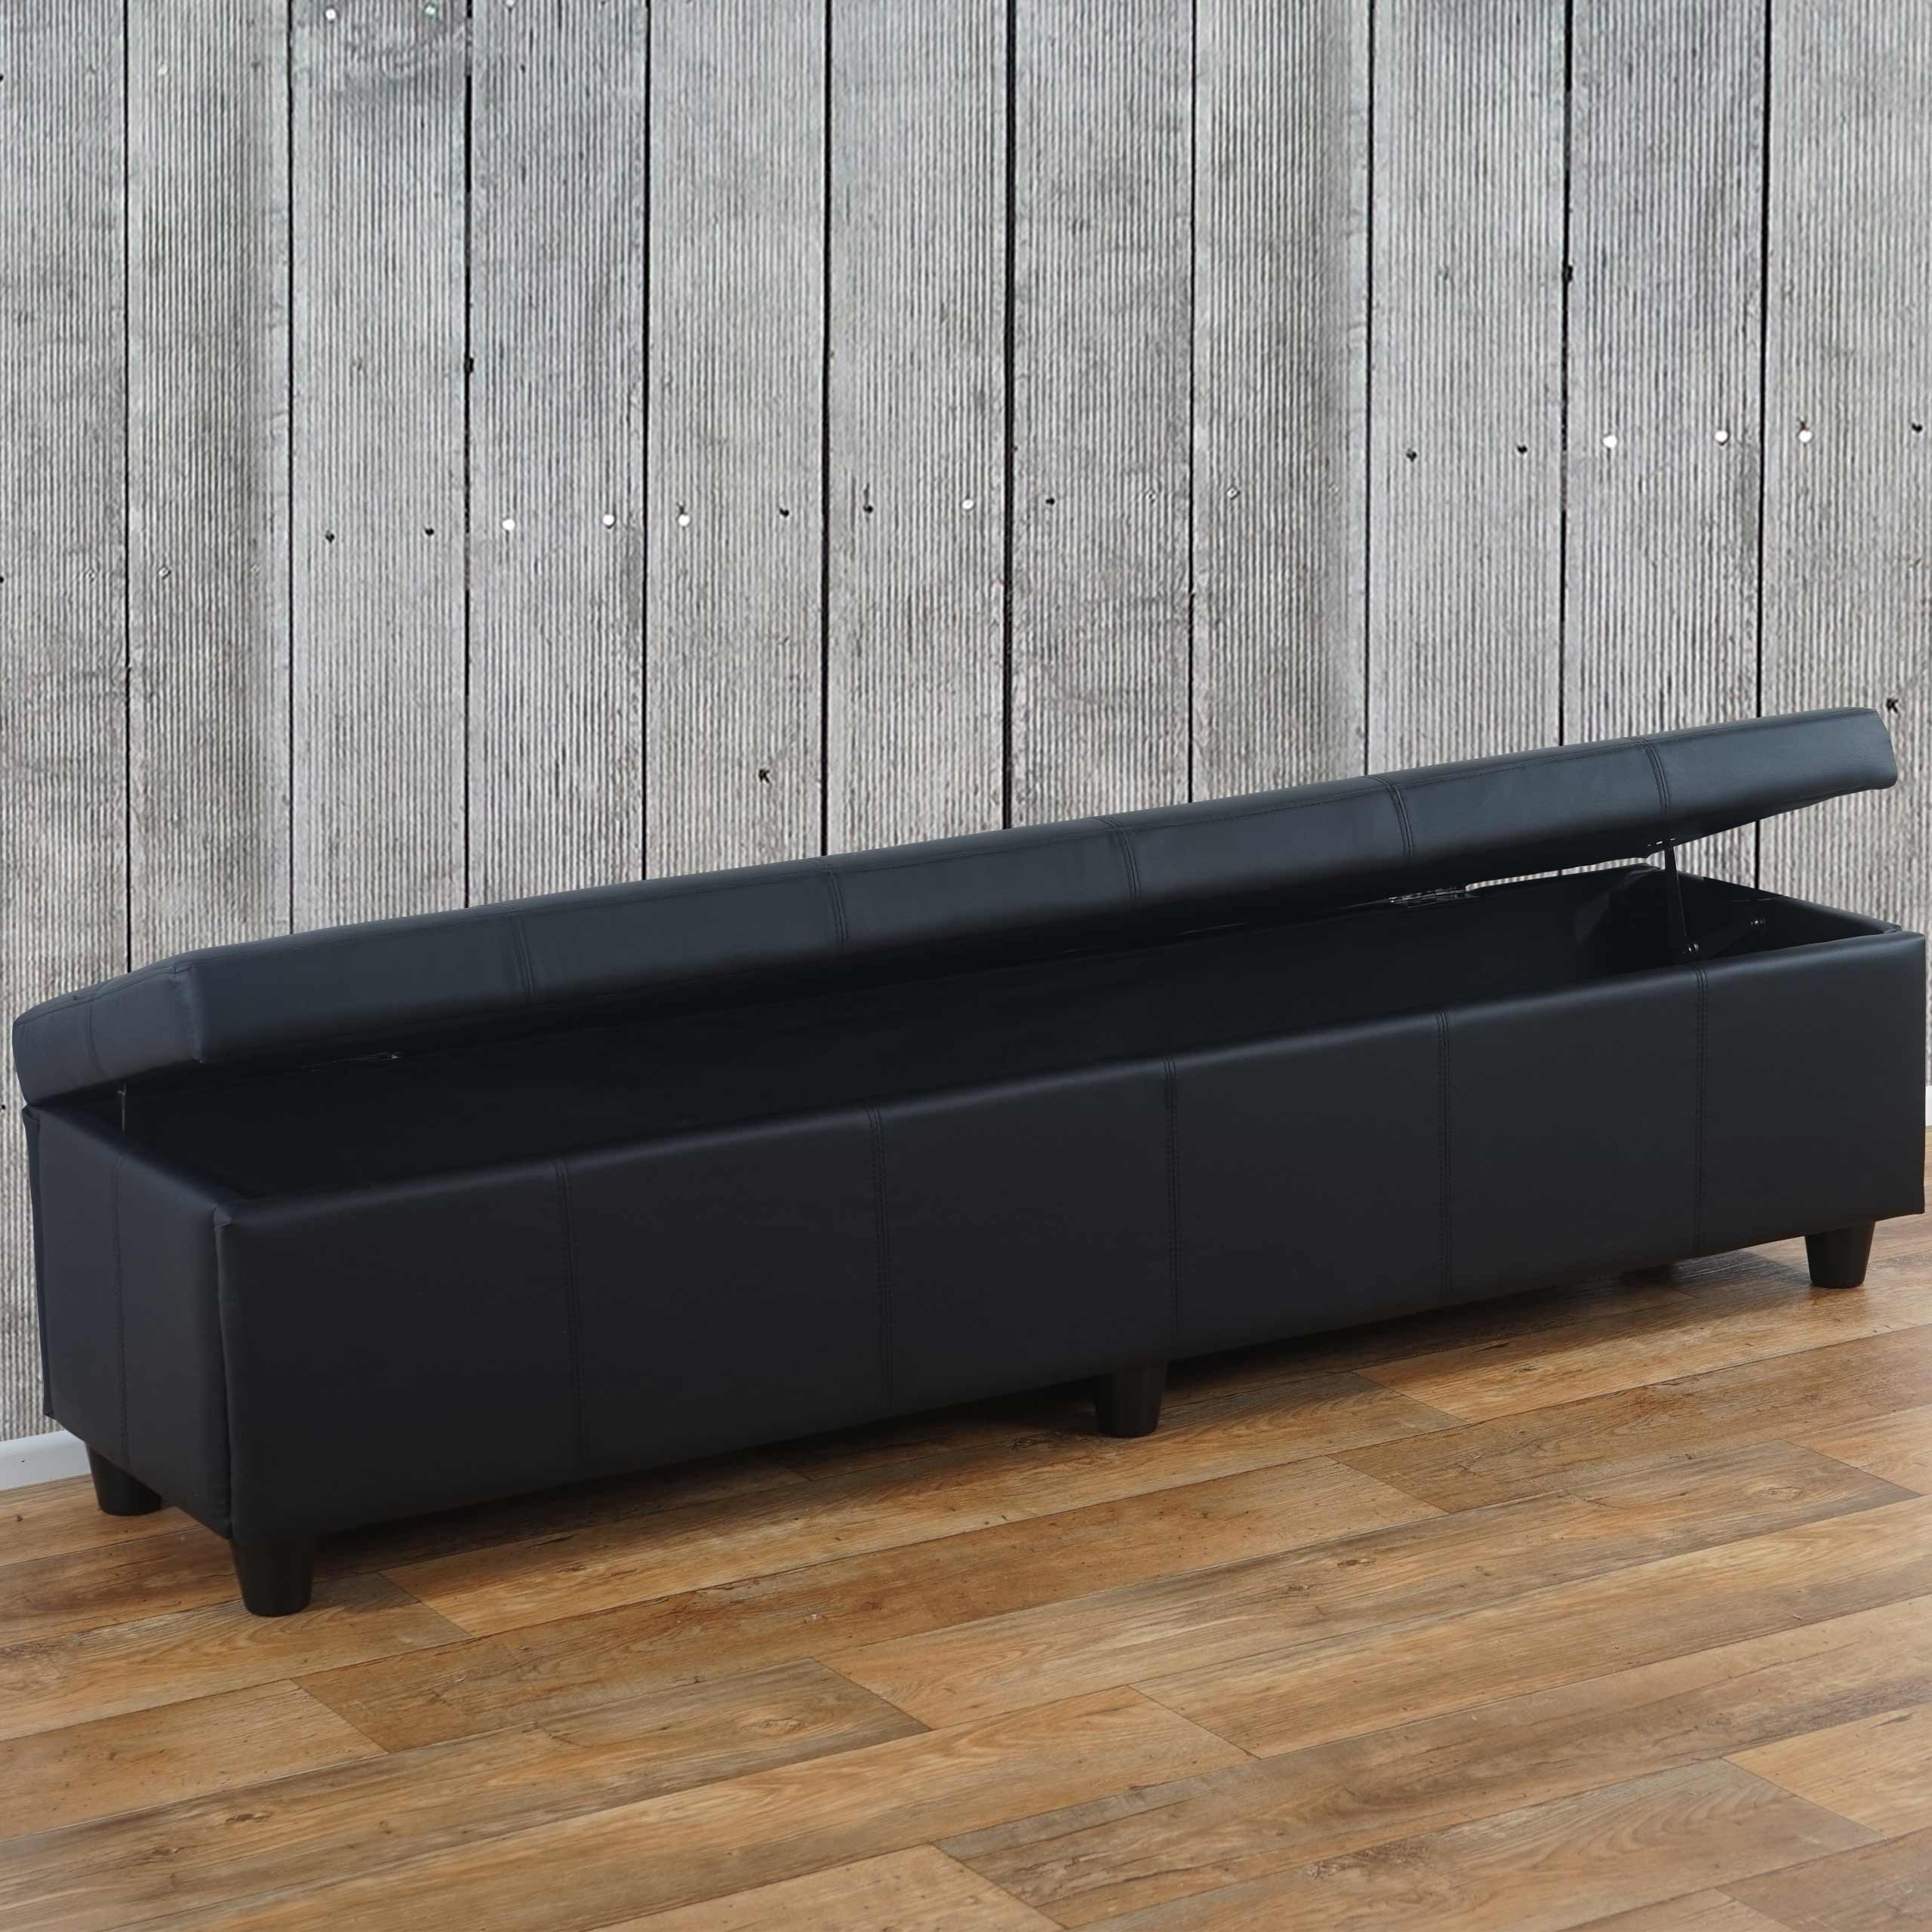 aufbewahrungs truhe sitzbank bank kriens xxl kunstleder 180x45x45cm ebay. Black Bedroom Furniture Sets. Home Design Ideas